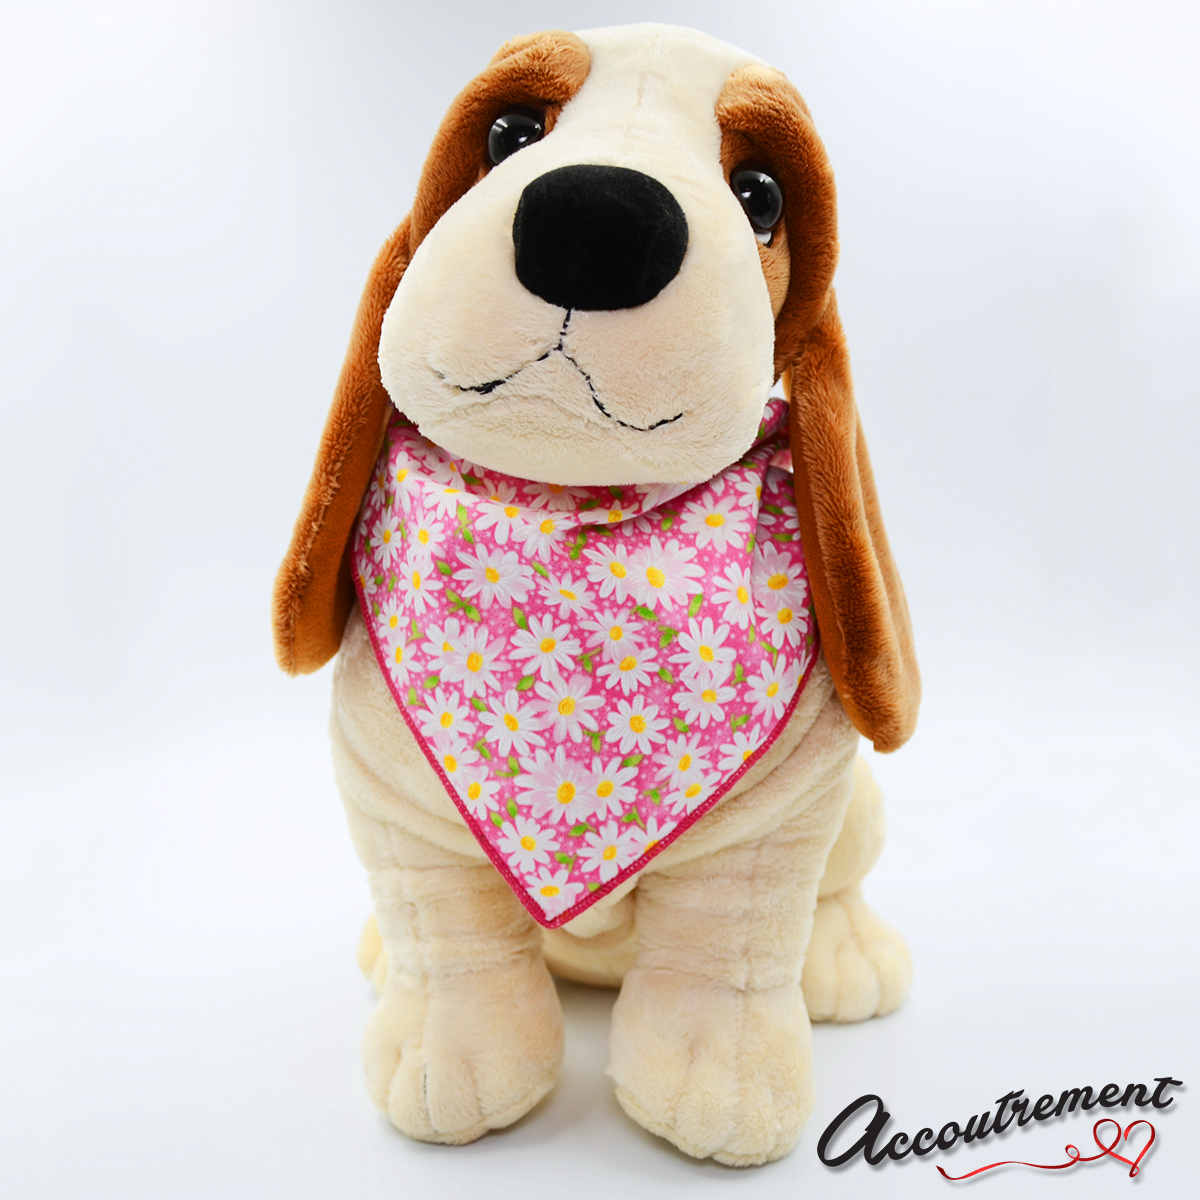 accoutrement.store bandanas - daisies on pink.jpg